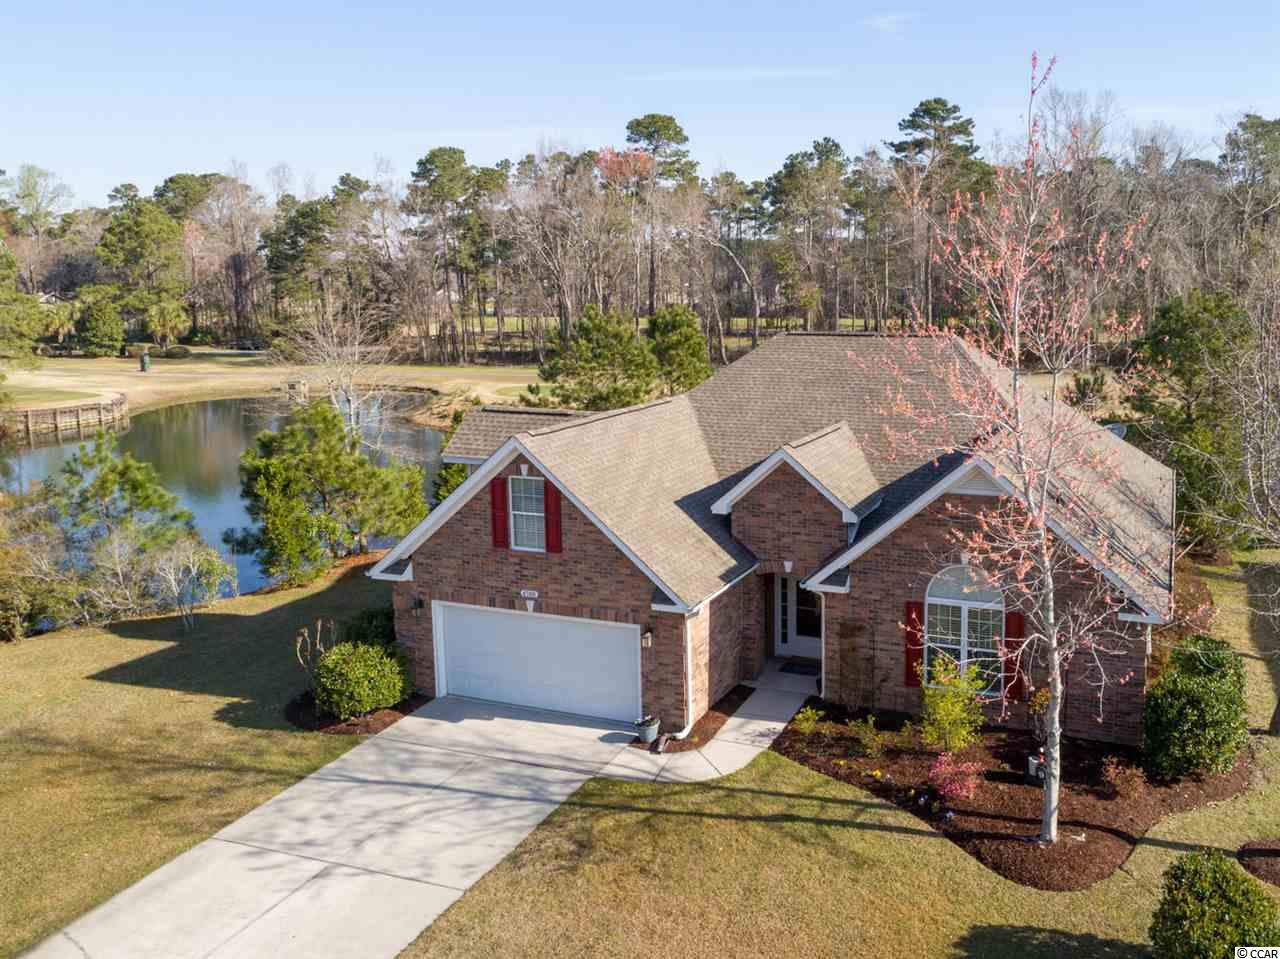 Ranch for Sale at 4508 Firethorne Drive 4508 Firethorne Drive Murrells Inlet, South Carolina 29576 United States